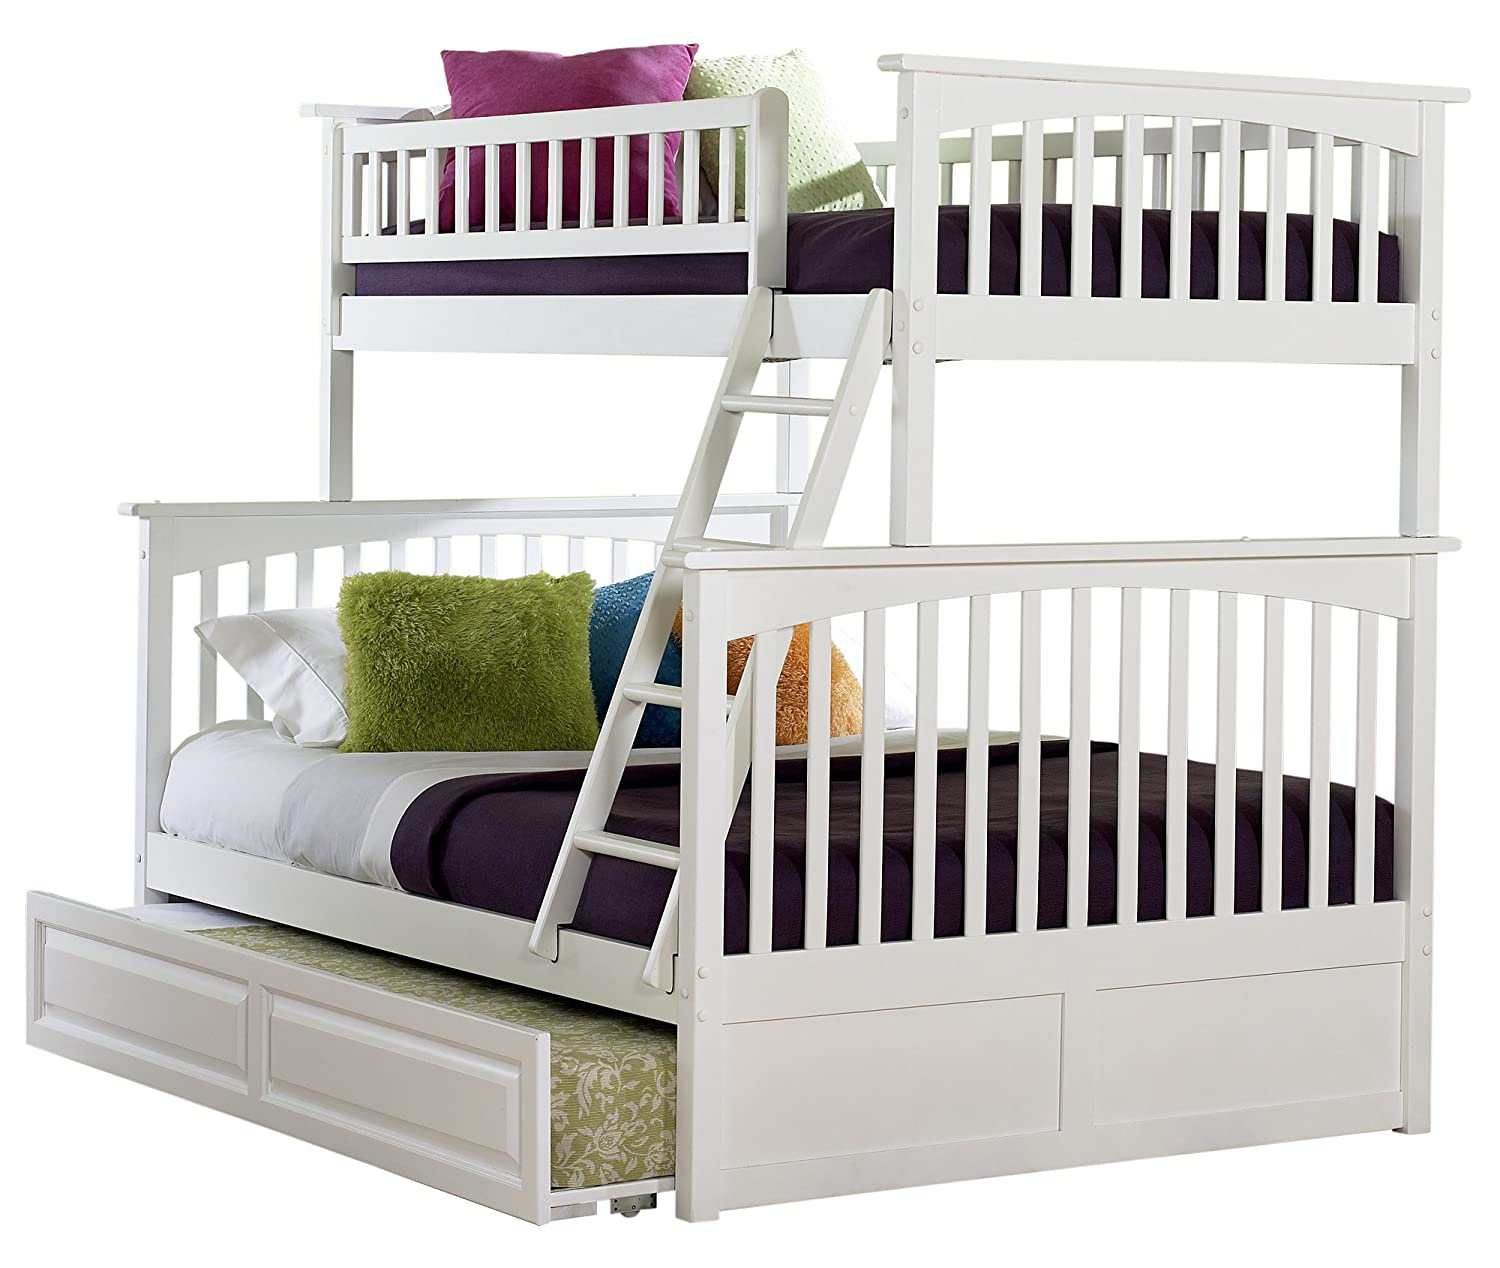 Amazoncom Columbia Bunk Bed with Trundle Bed Twin Over Full